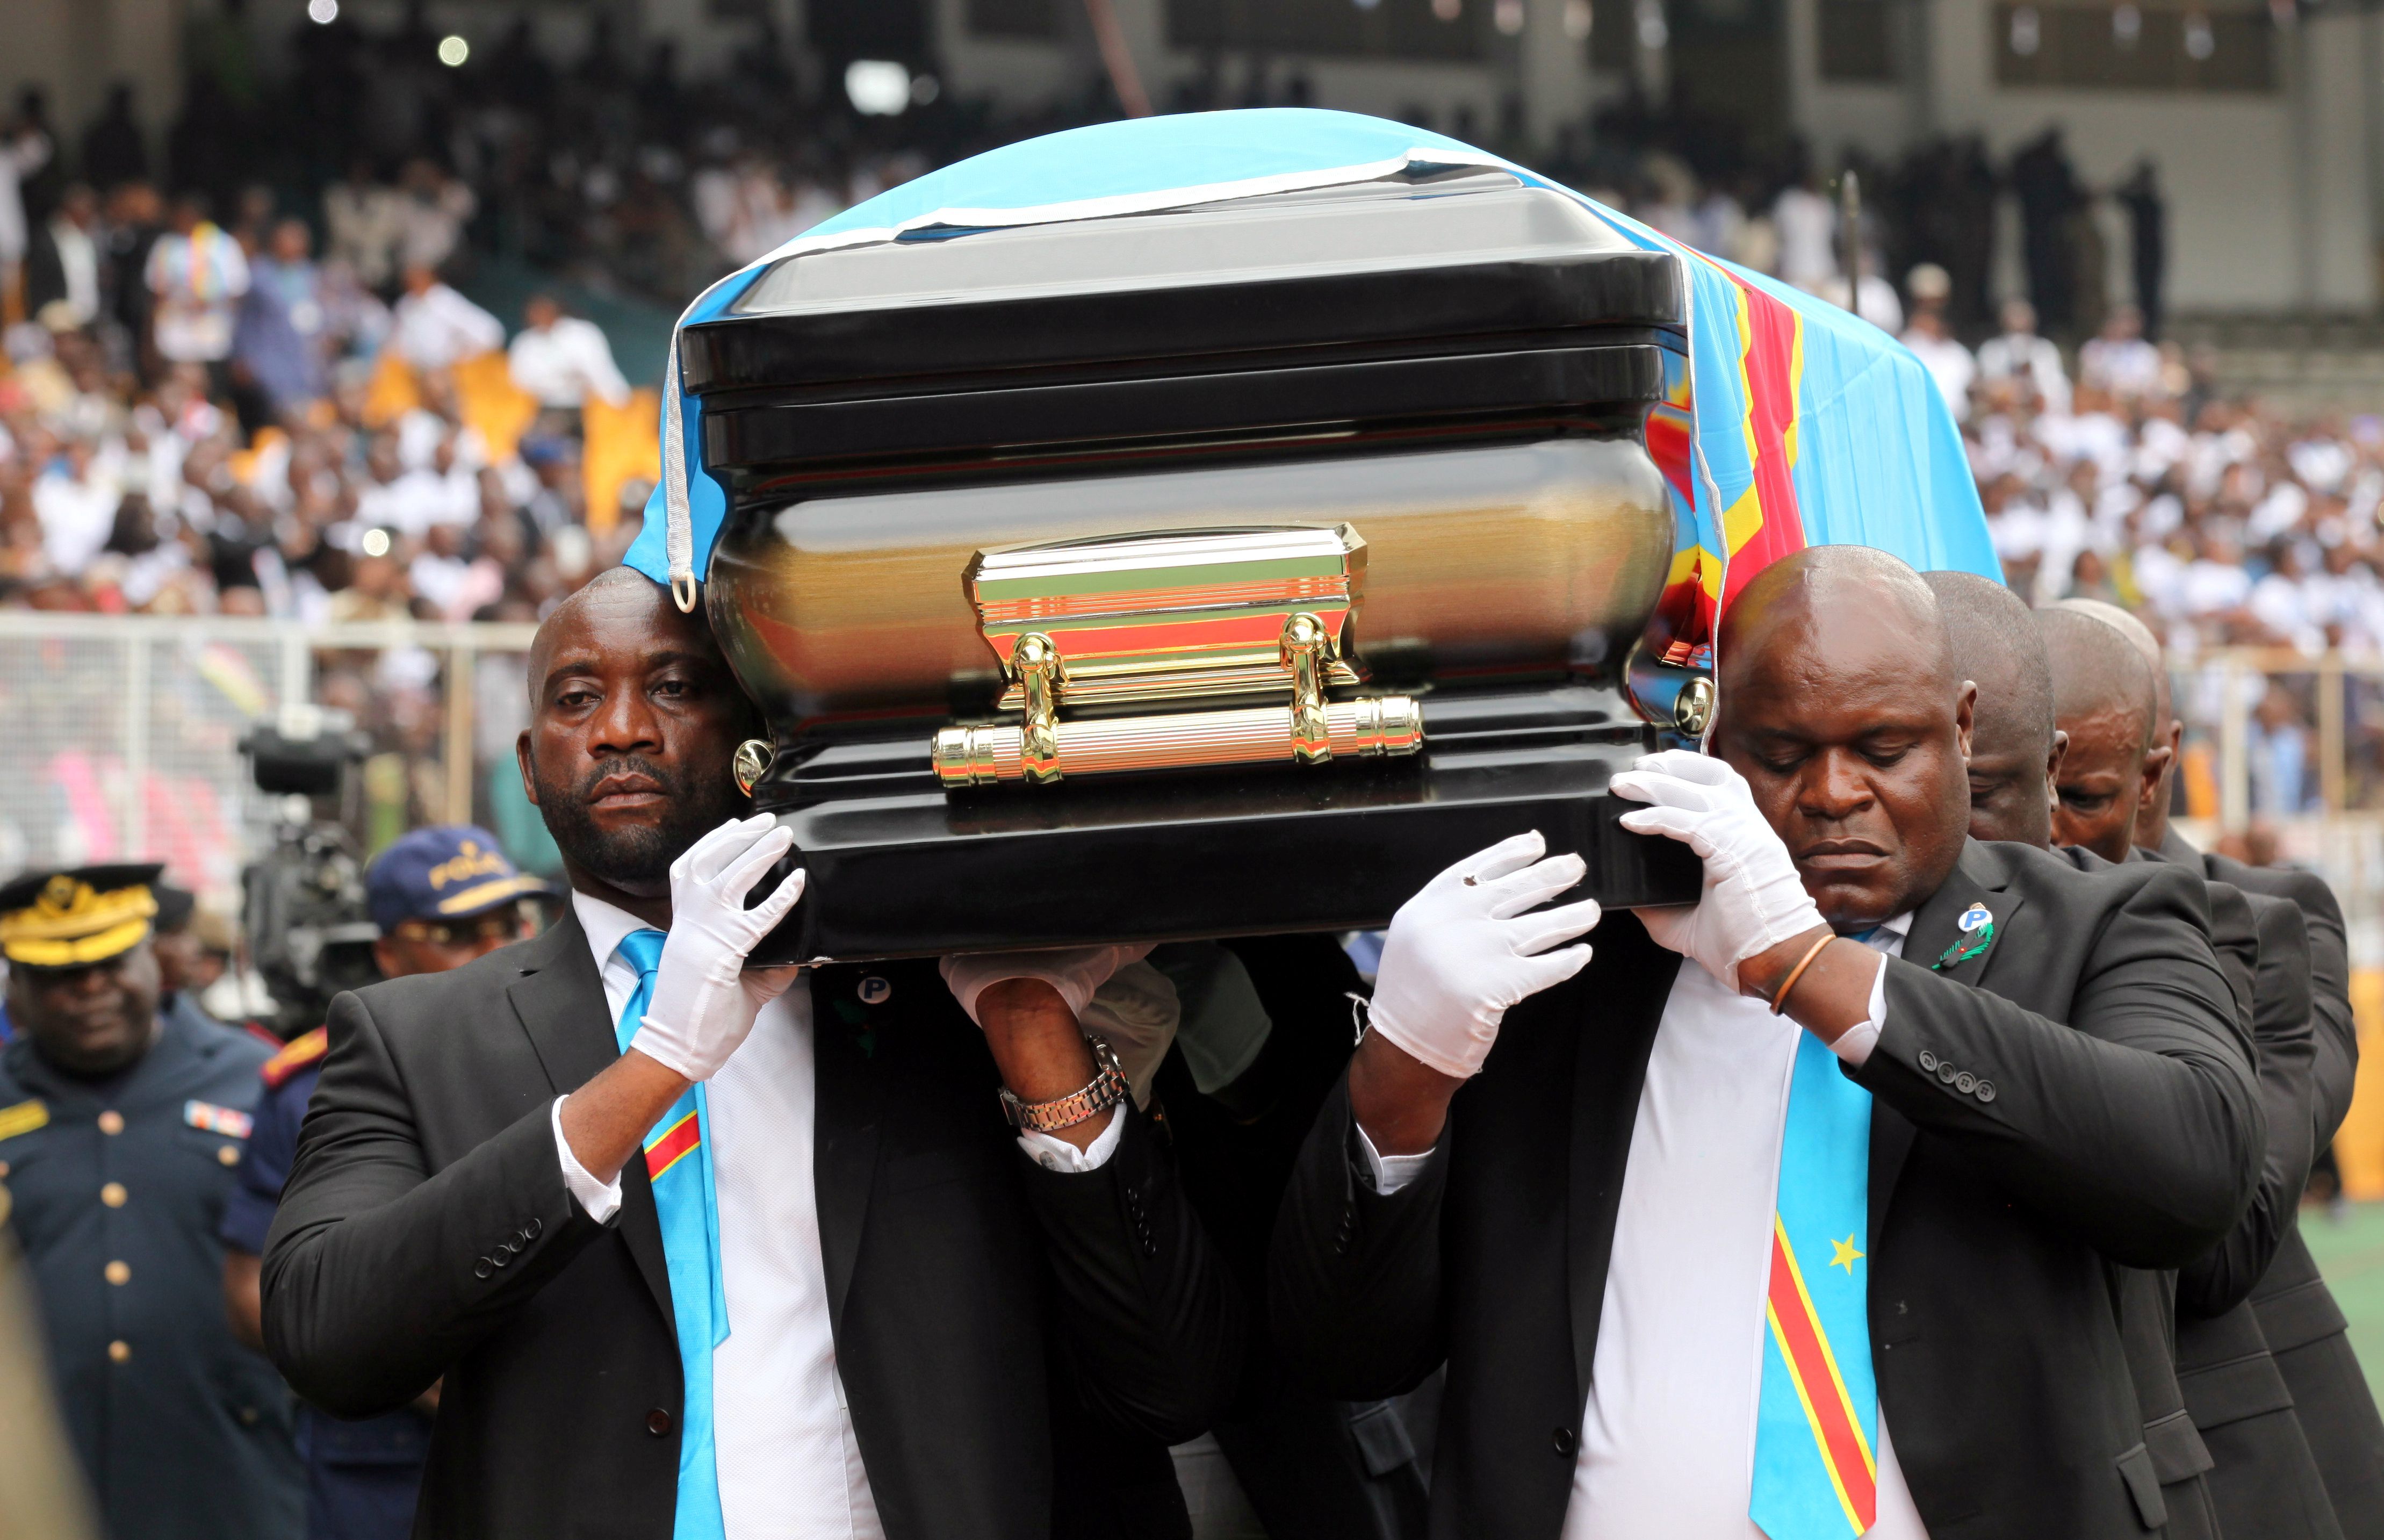 Pallbearers carry the casket with the remains of Etienne Tshisekedi, former Congolese opposition figure who died in Belgium two years ago, at the Martyrs of Pentecost Stadium in Kinshasa, Democratic Republic of Congo May 31, 2019.